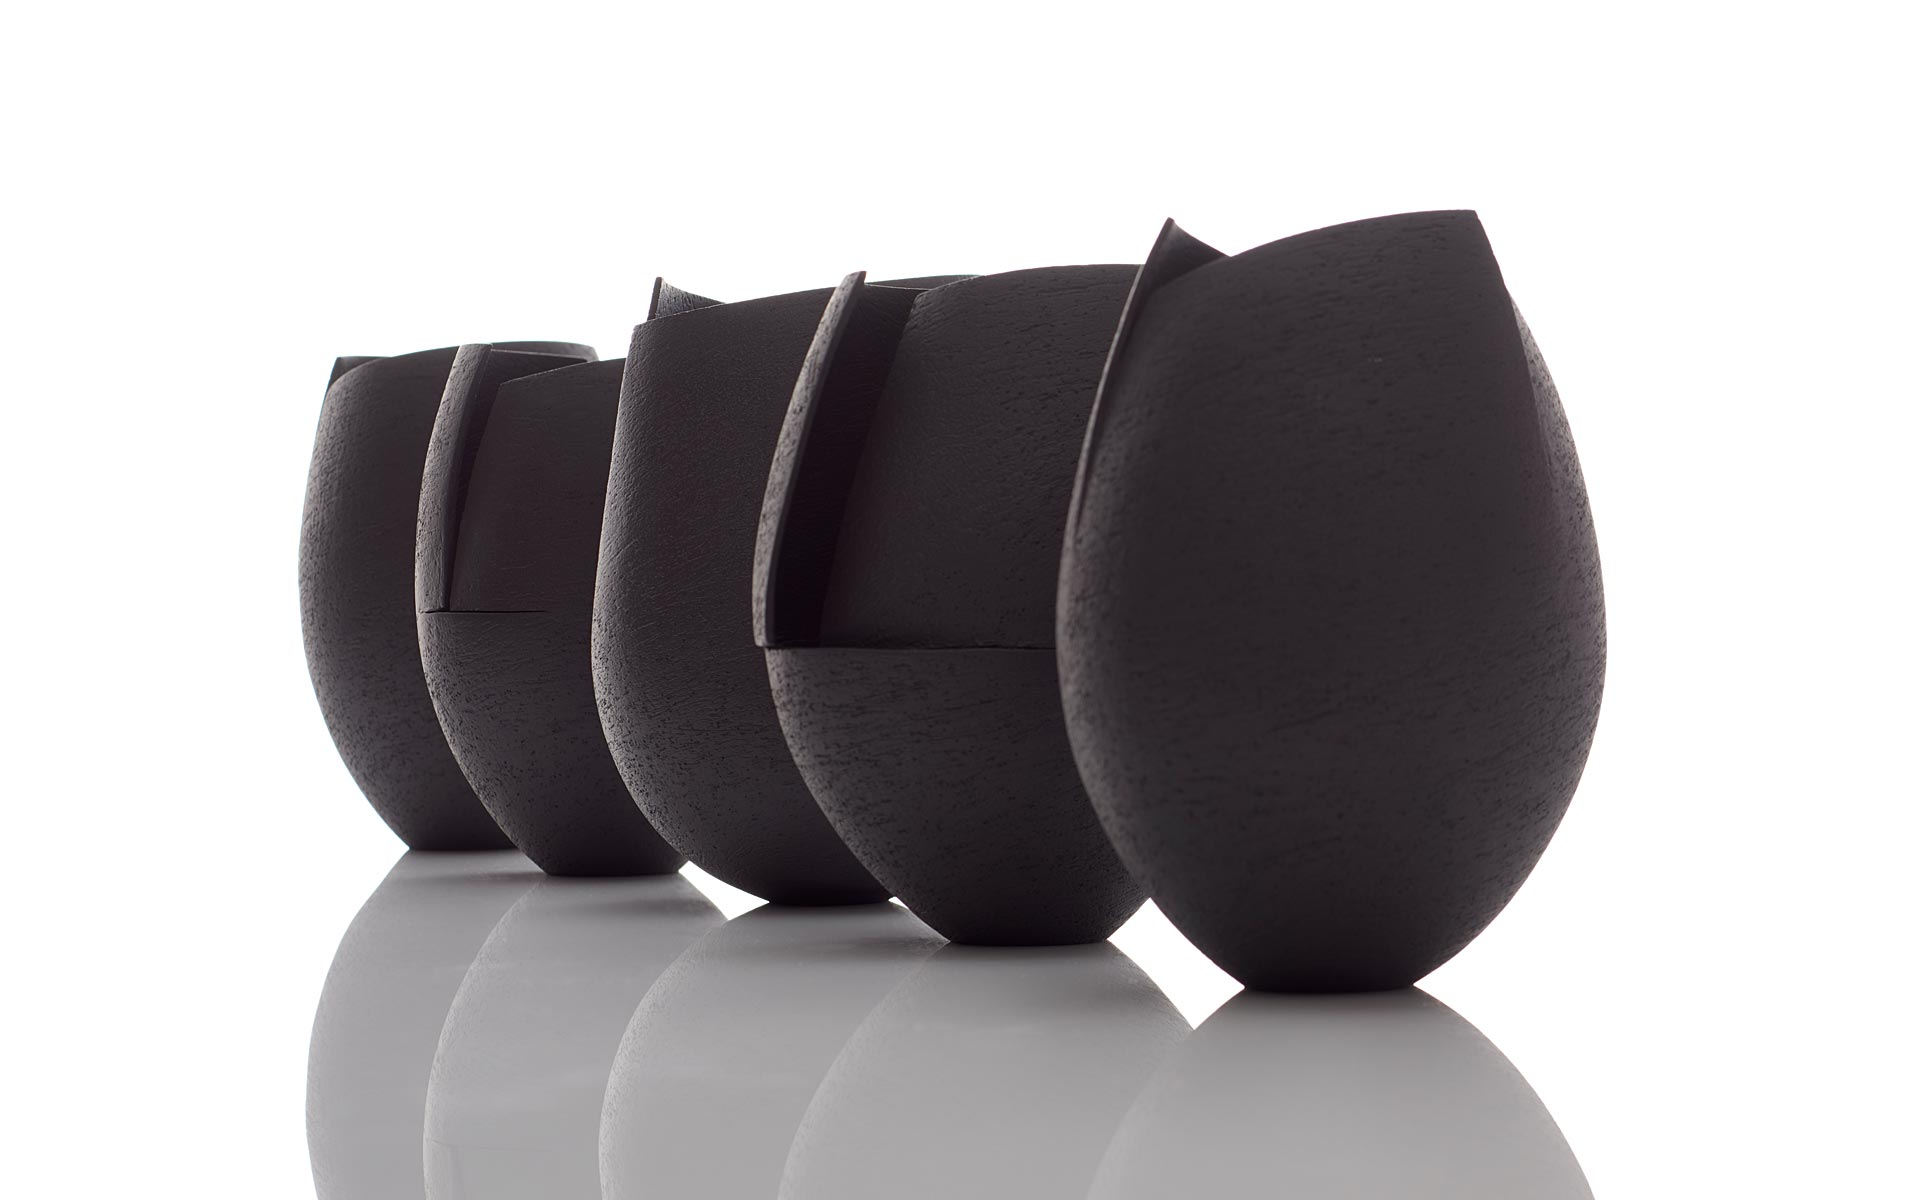 Group of Small Black Cut Vessels